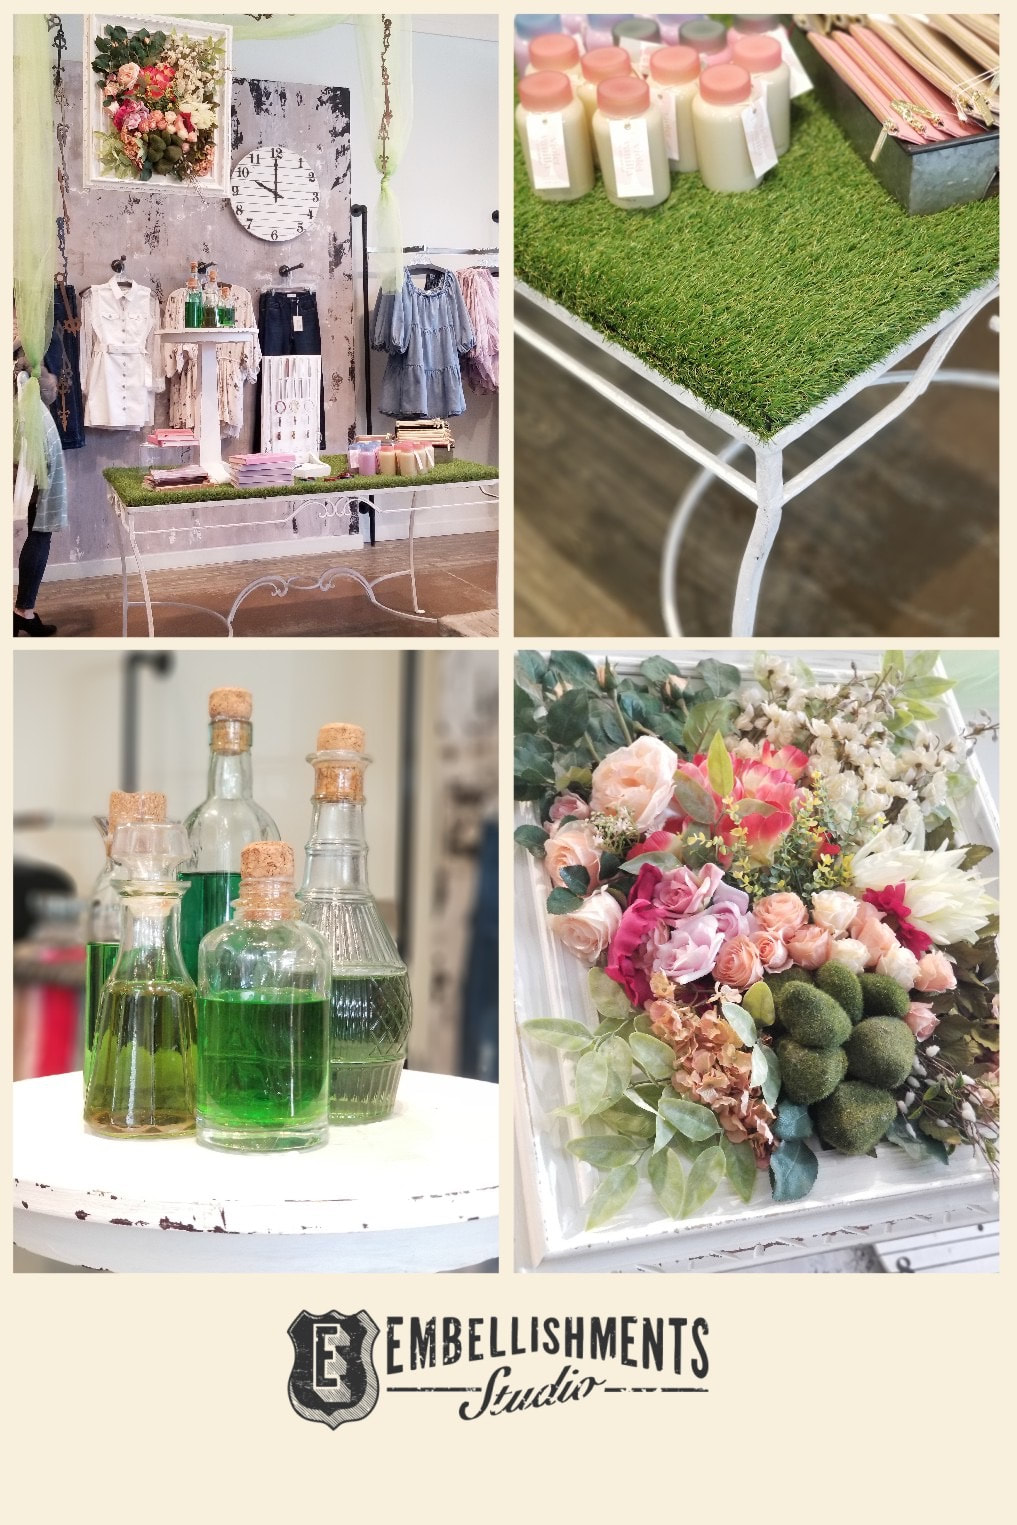 Wonderland Spring Store Display with great ideas for a garden party or wedding.